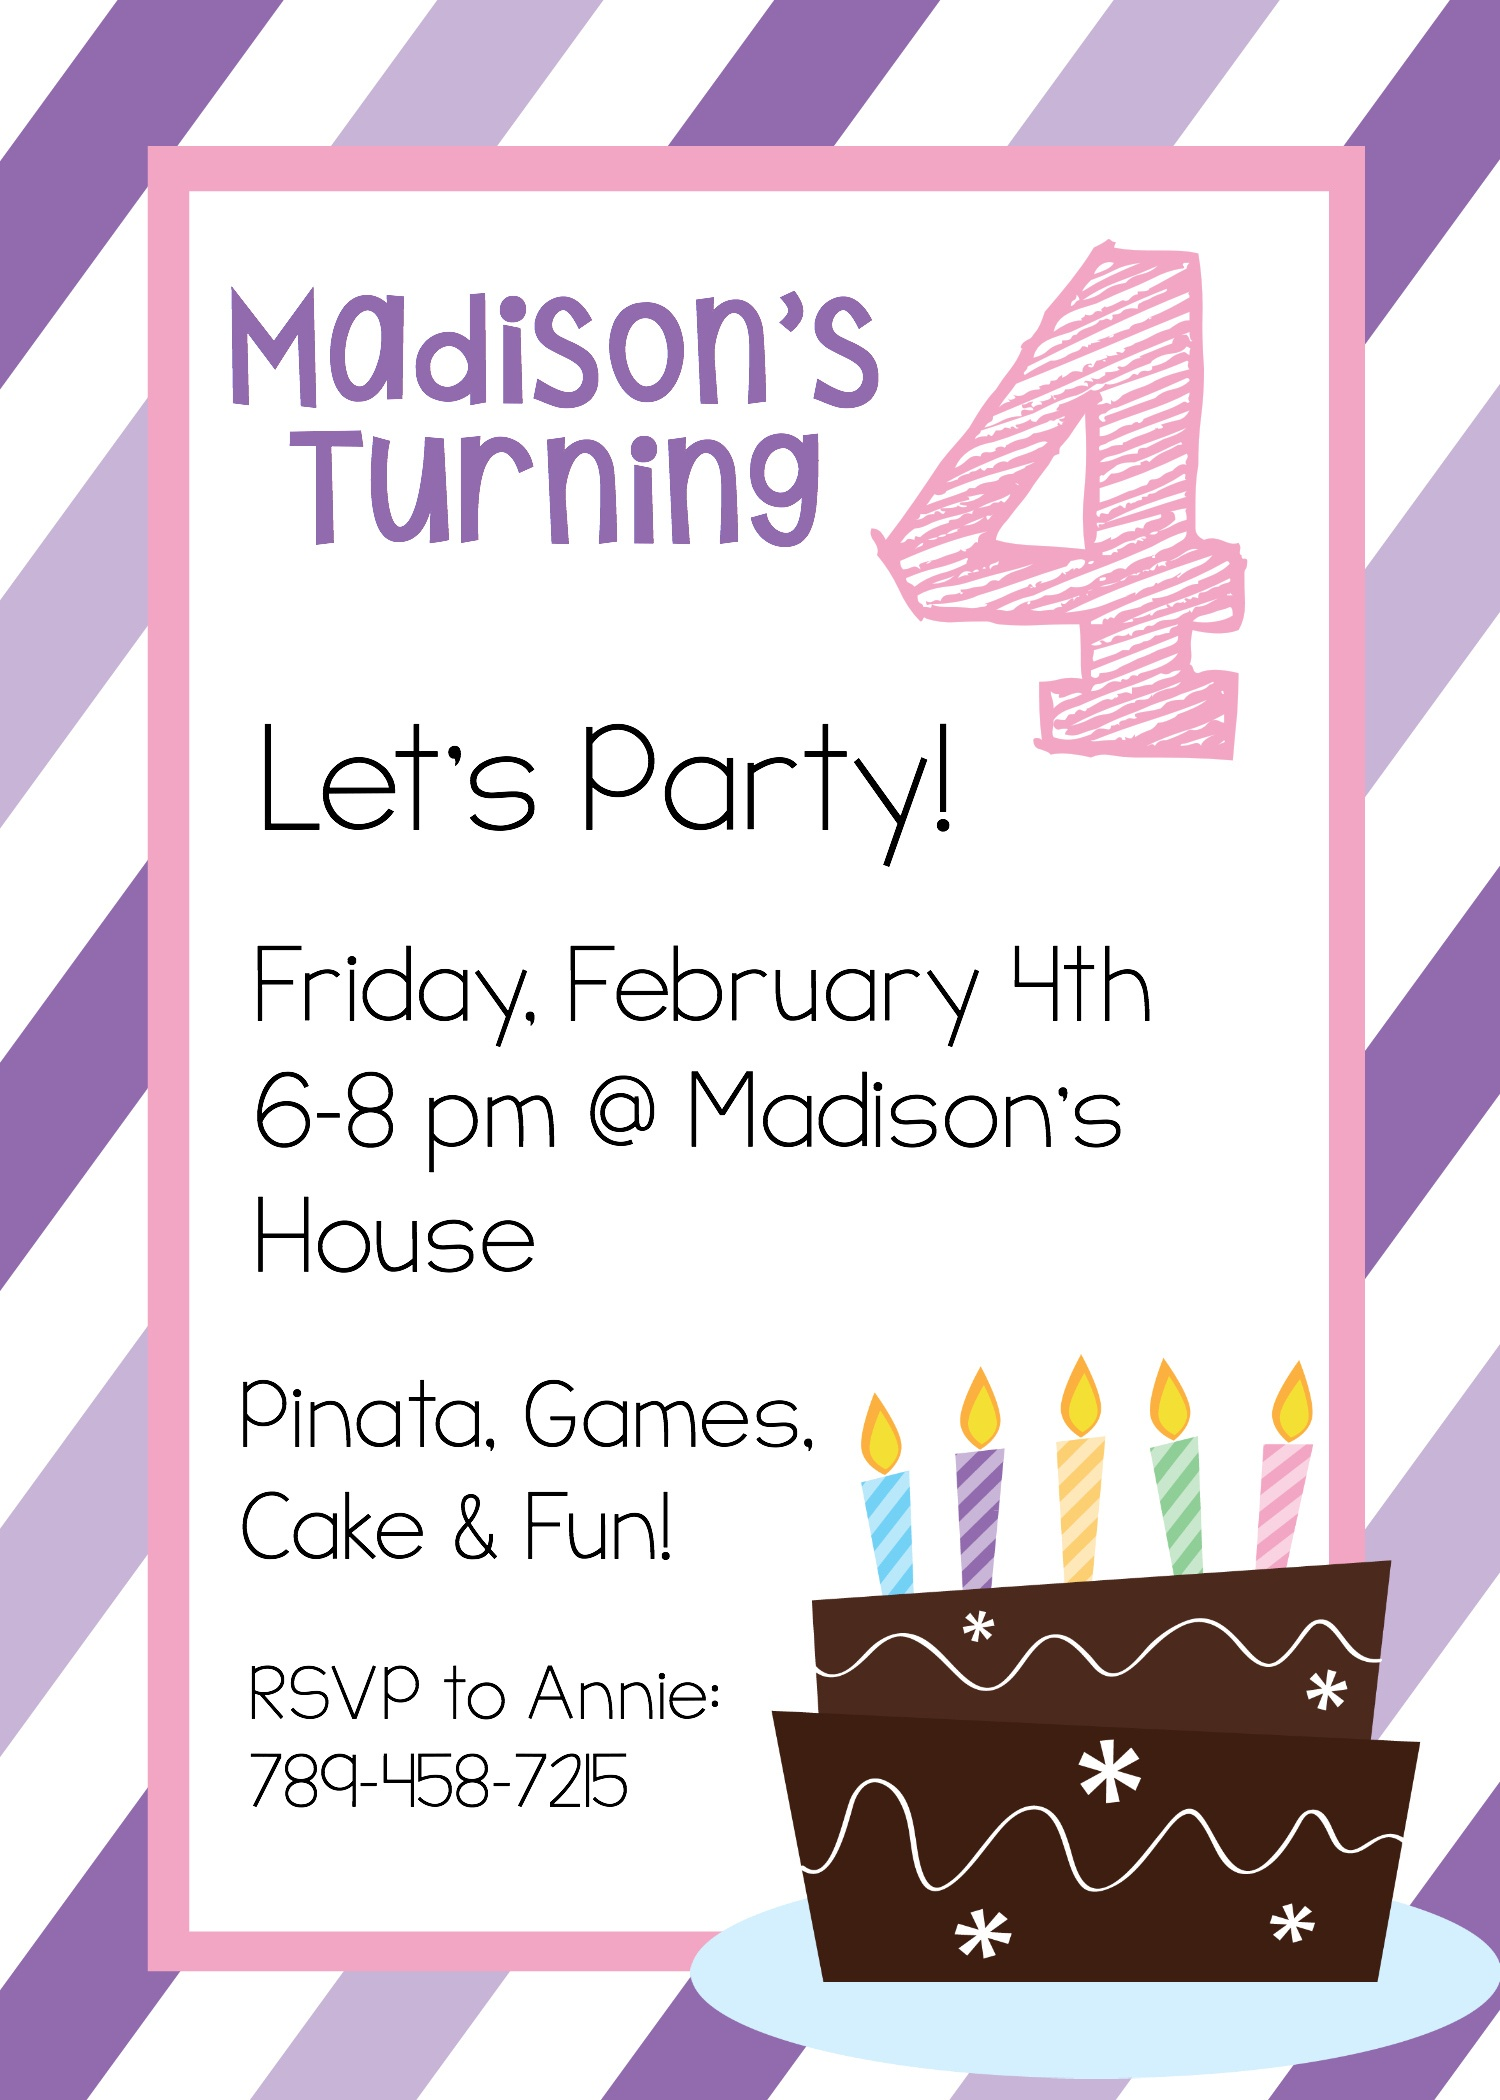 Free Printable Birthday Invitation Templates - Party Invitation Maker Online Free Printable